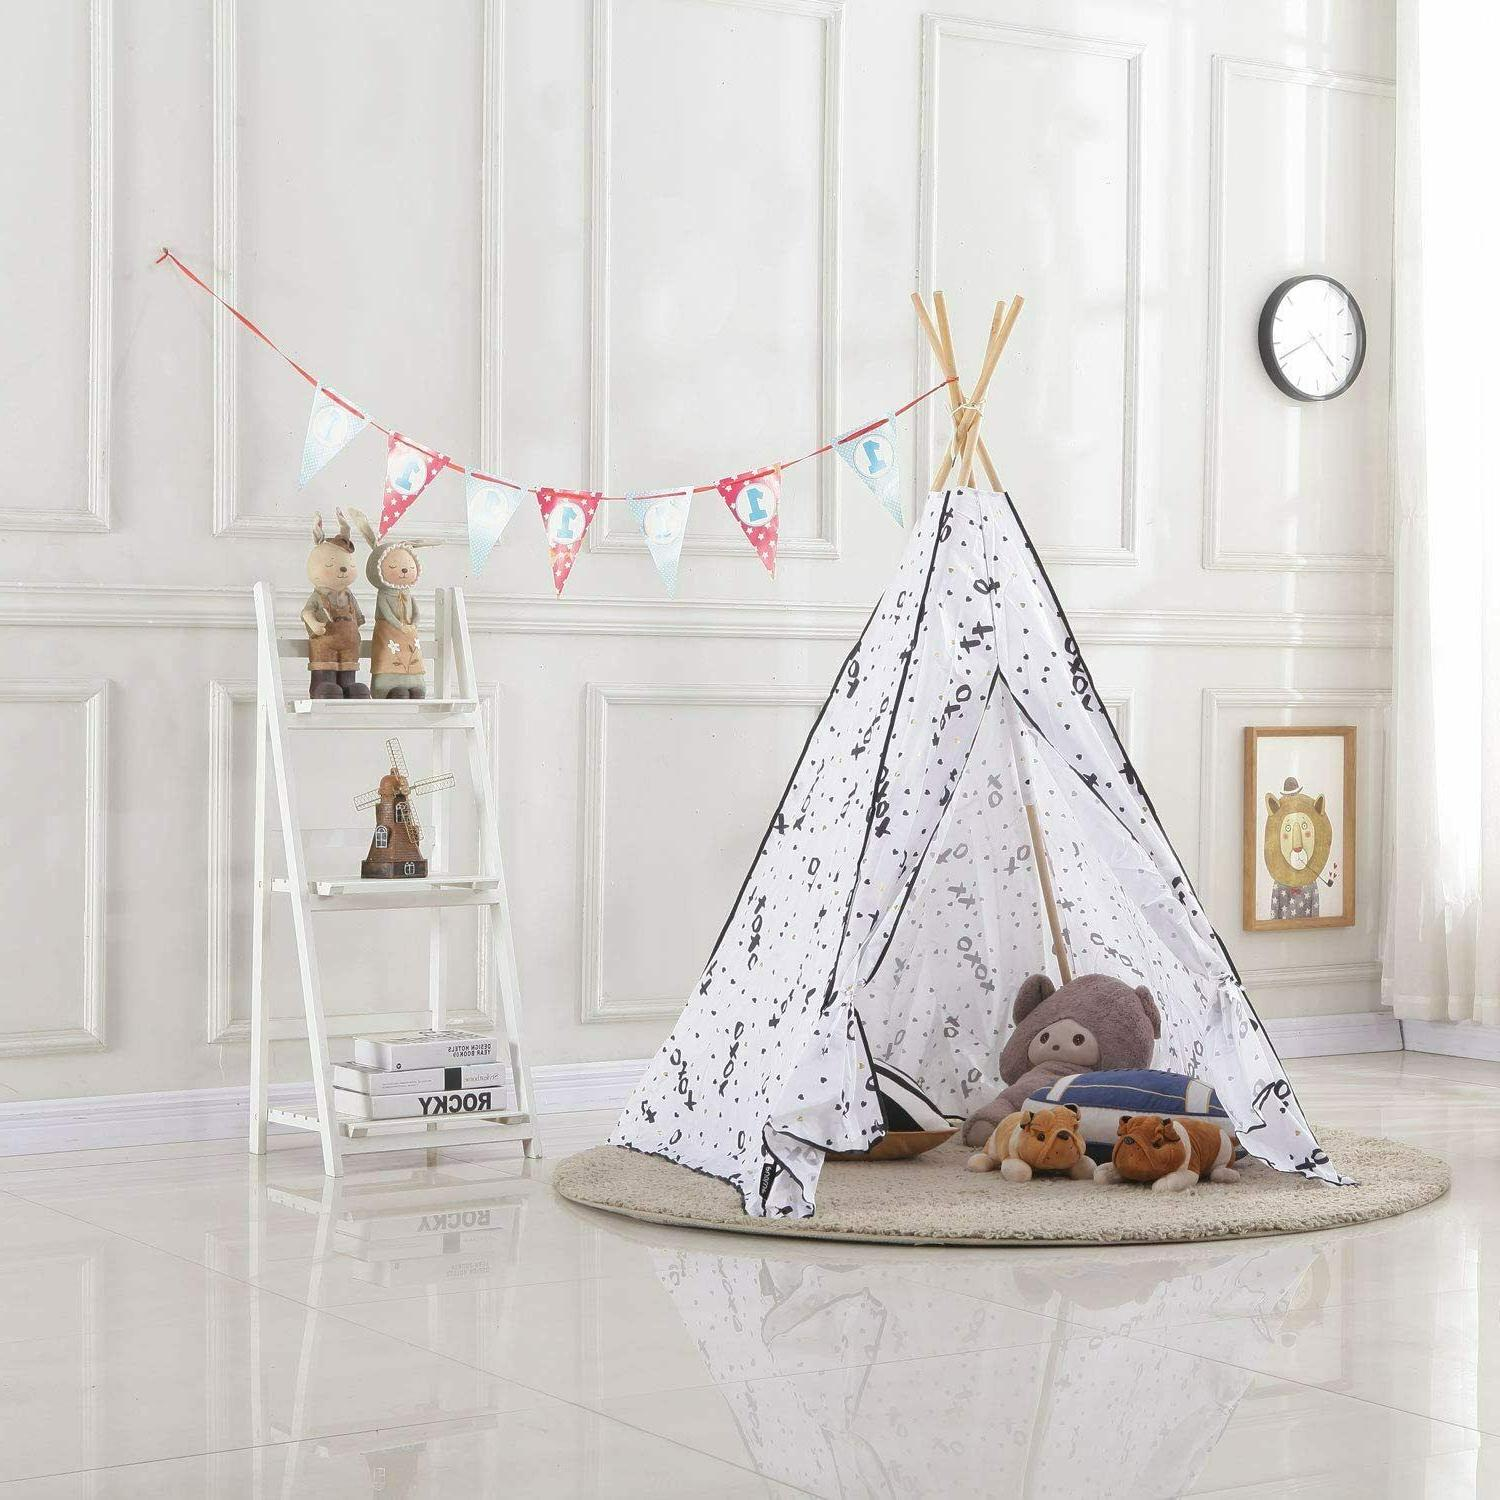 MallBest Tents Indian Tent Playhouse Portable